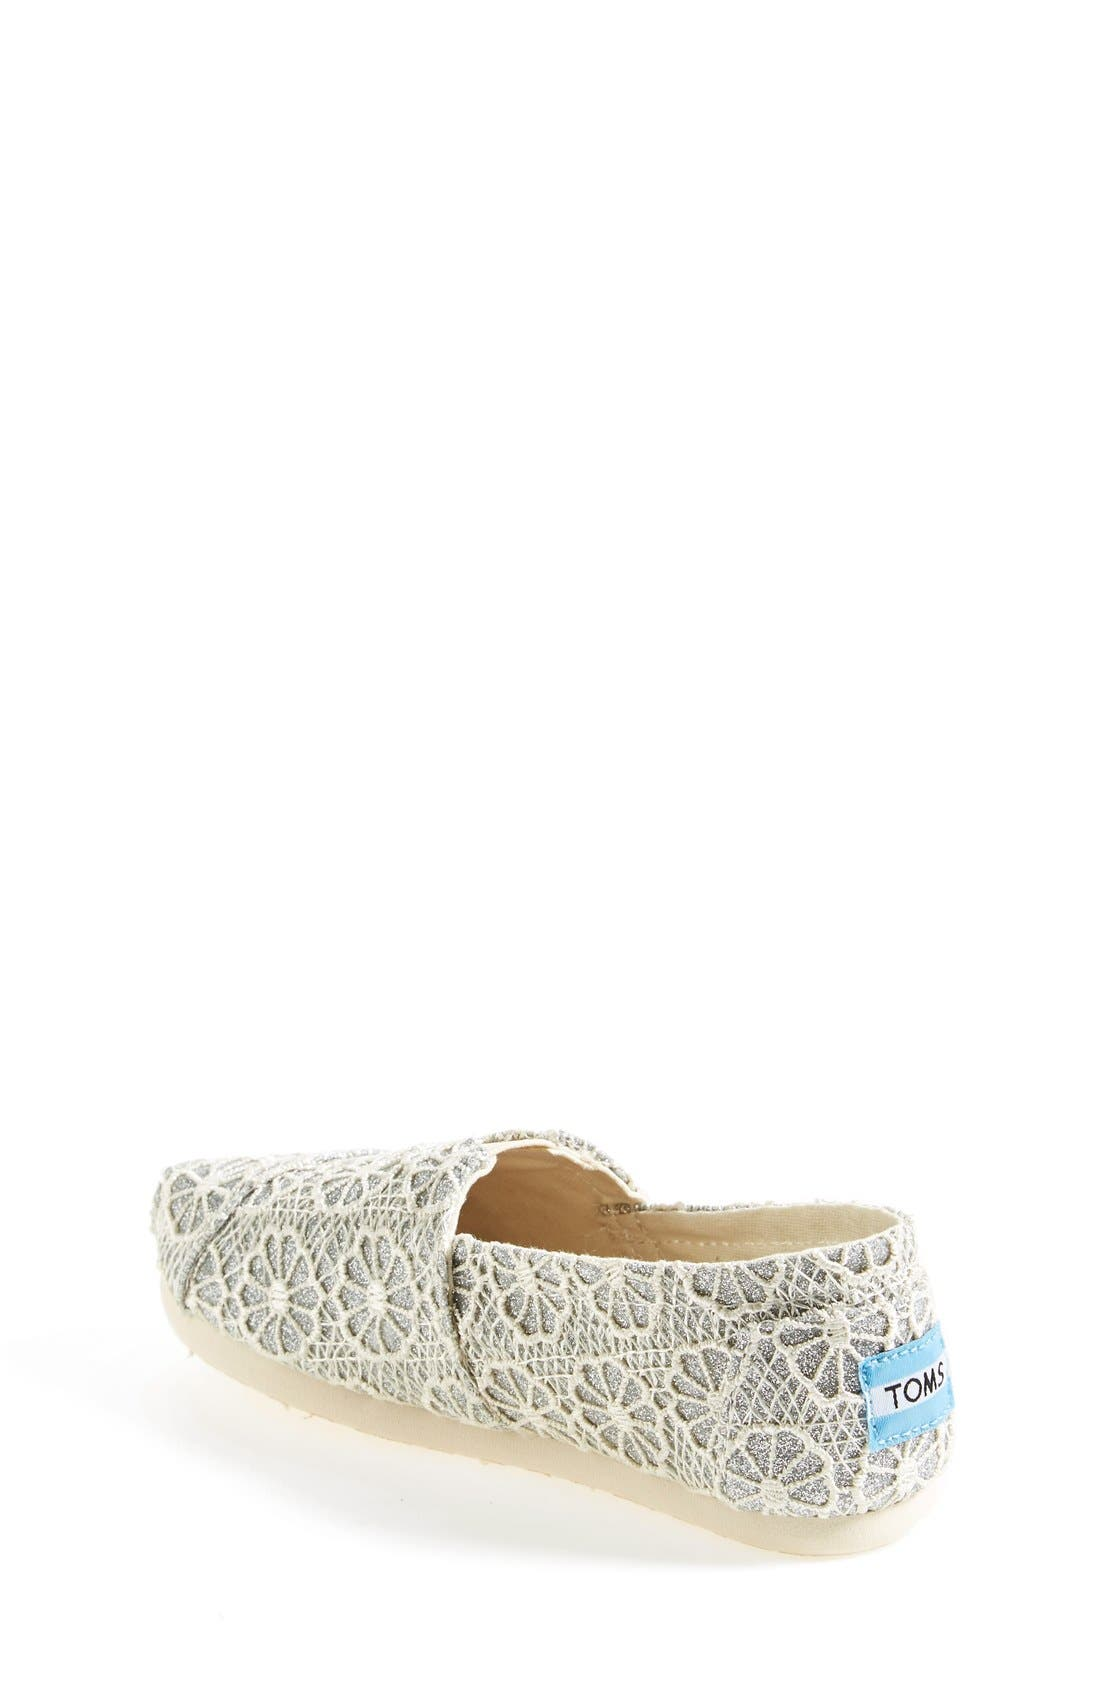 Alternate Image 2  - TOMS 'Youth - Glitter' Crochet Slip-On (Toddler, Little Kid & Big Kid)